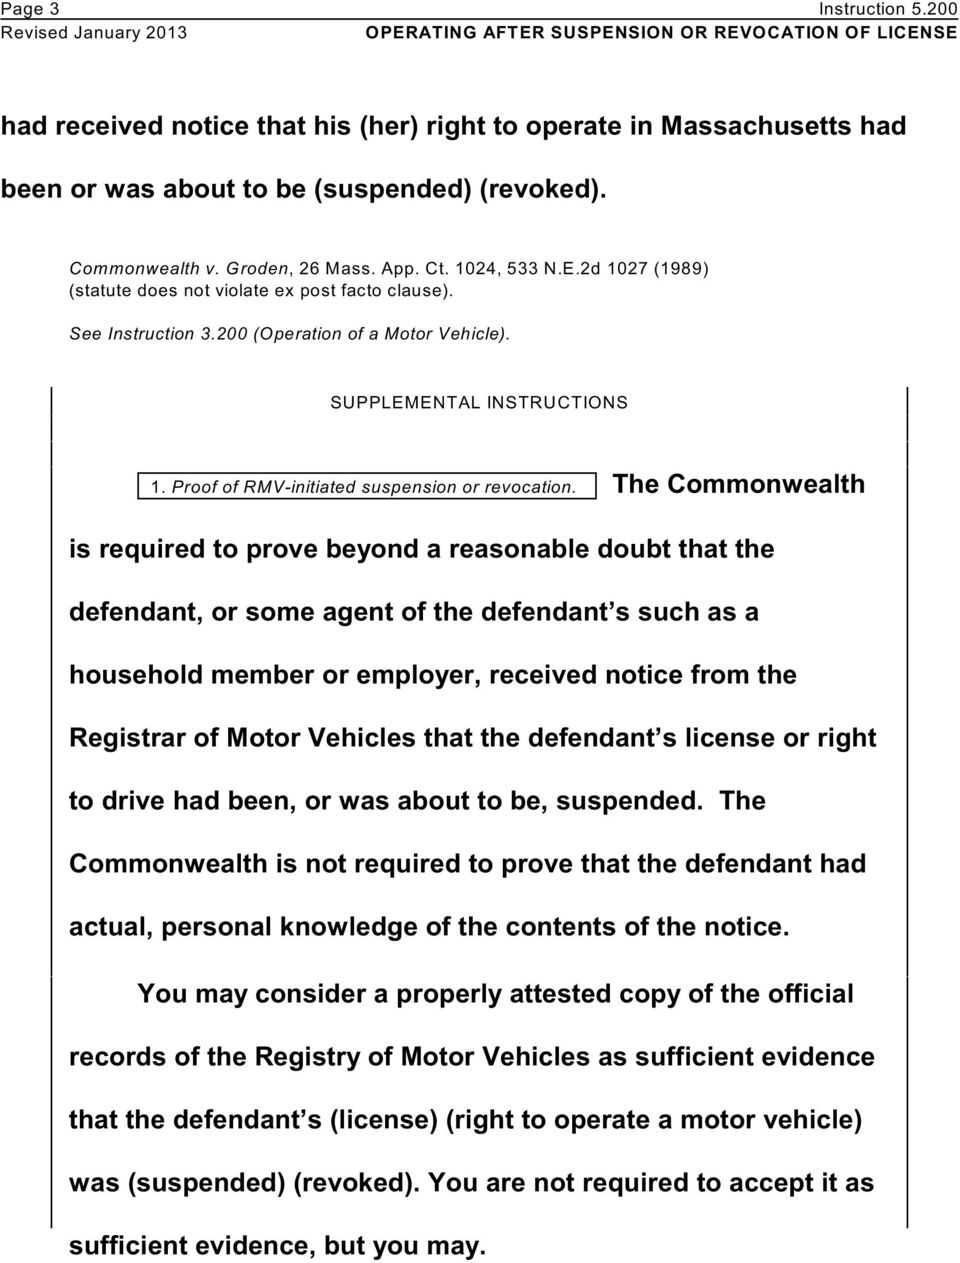 Proof of RMV-initiated suspension or revocation.